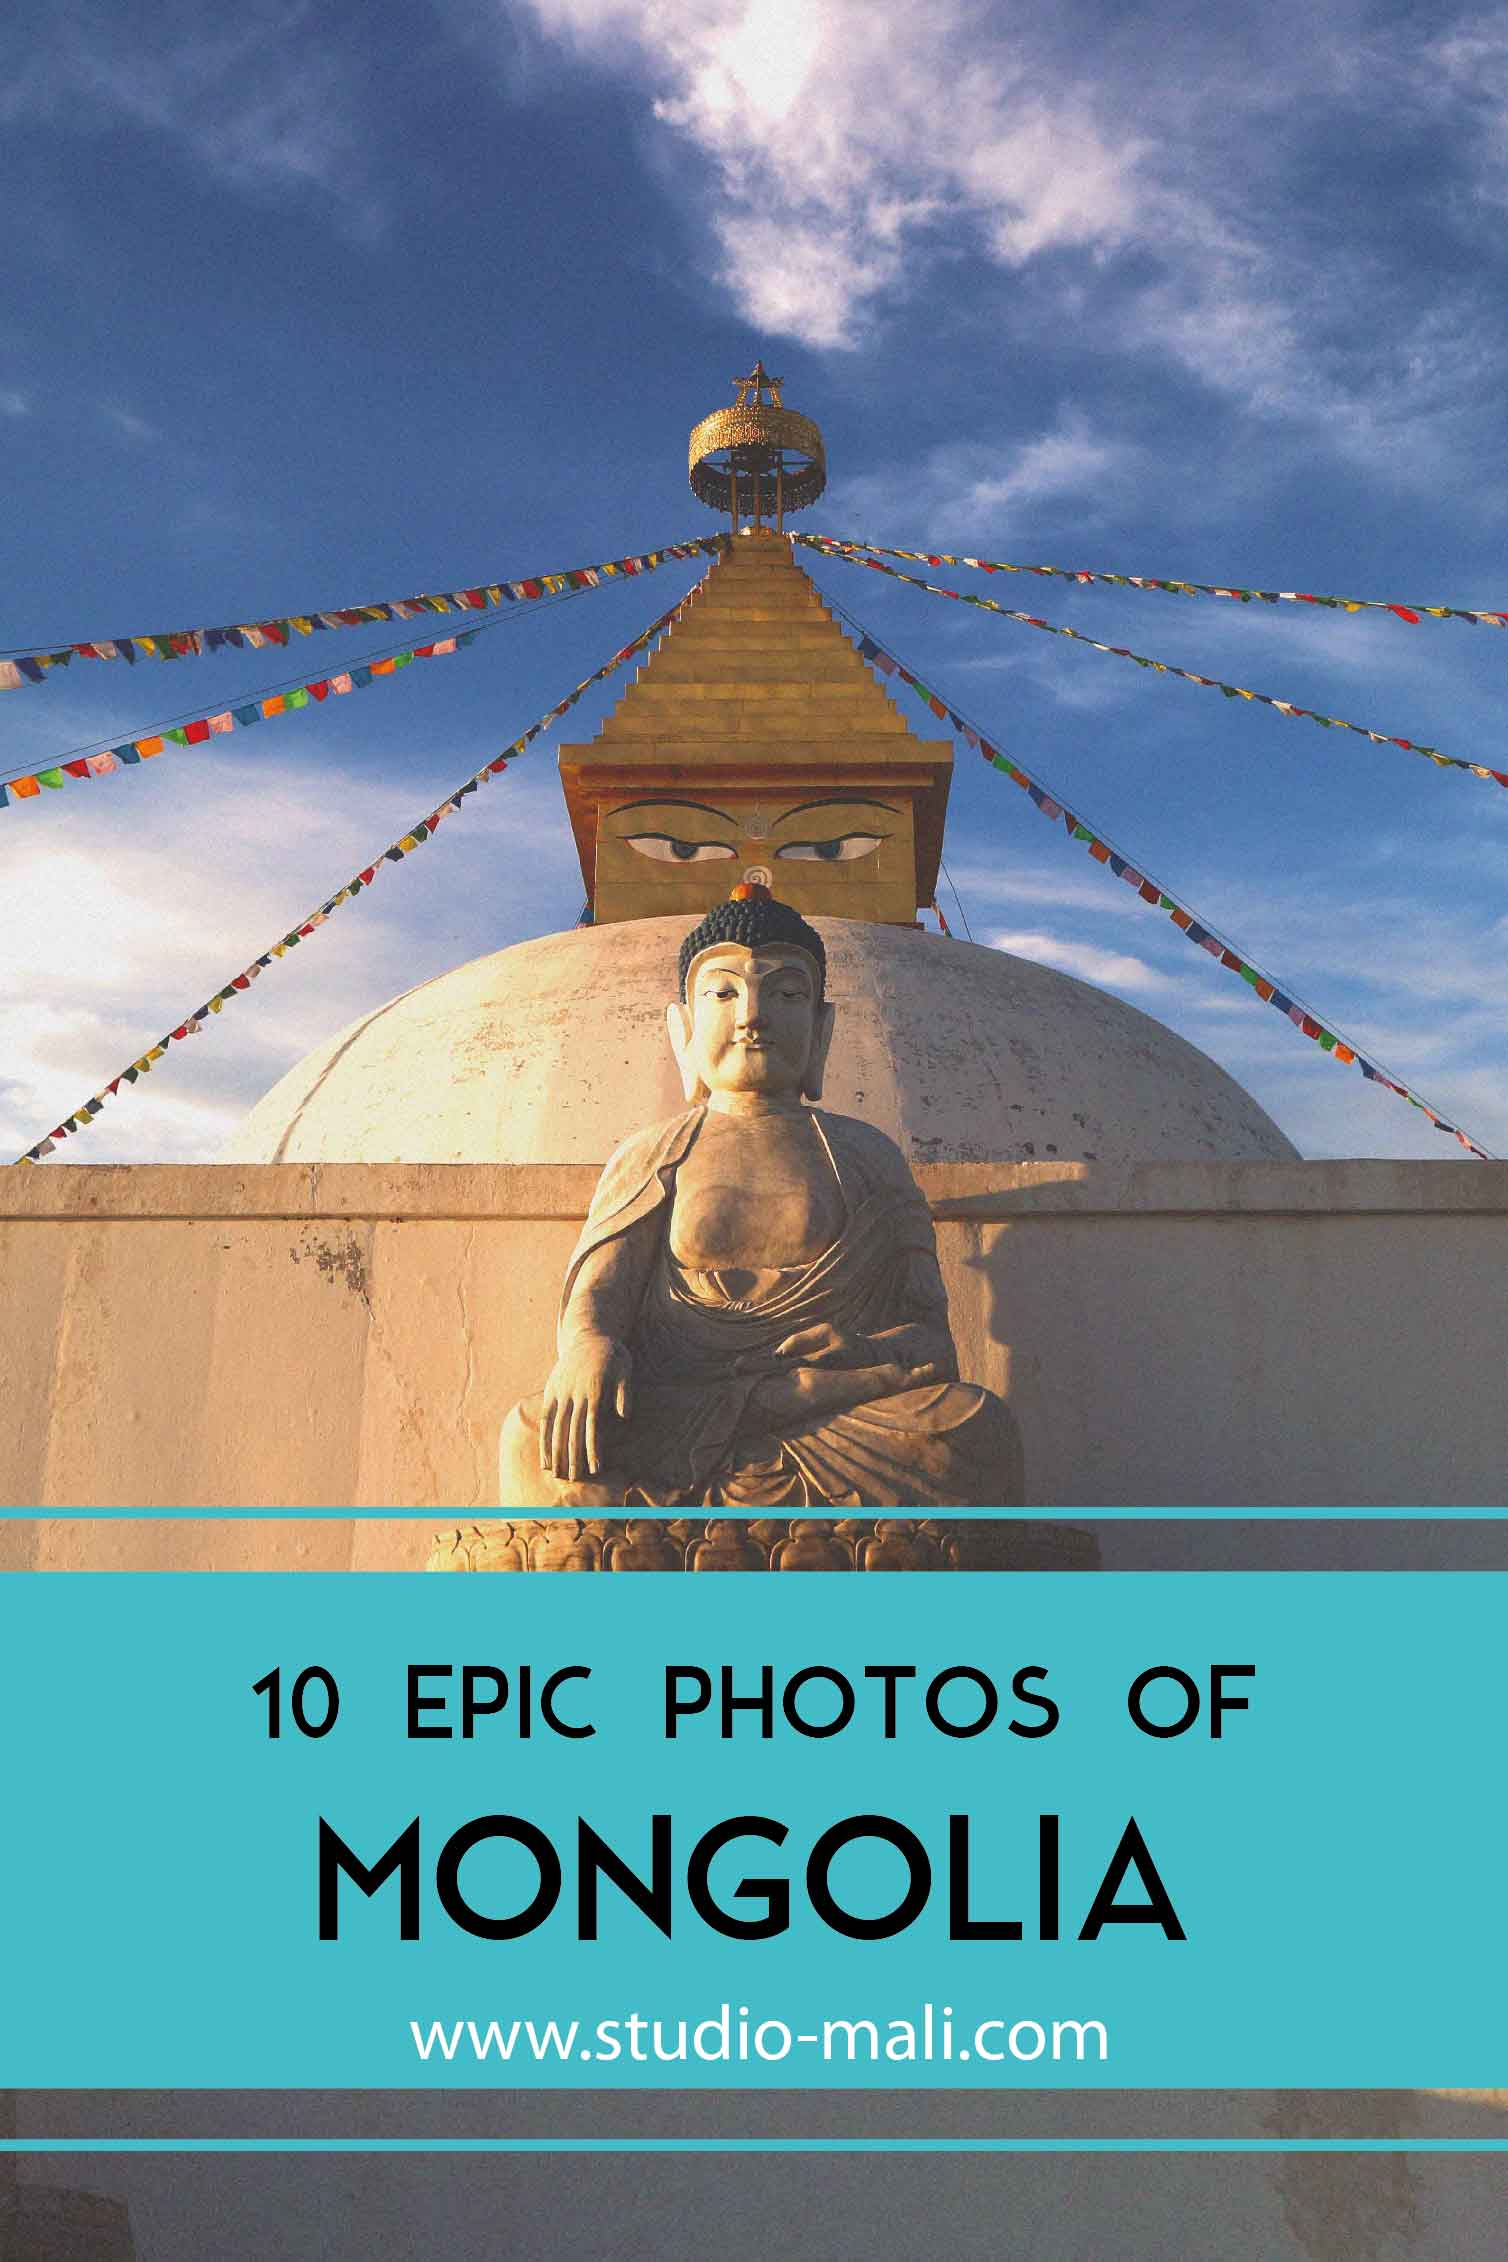 10 Epic Photos Of Mongolia, by Studio Mali.jpg